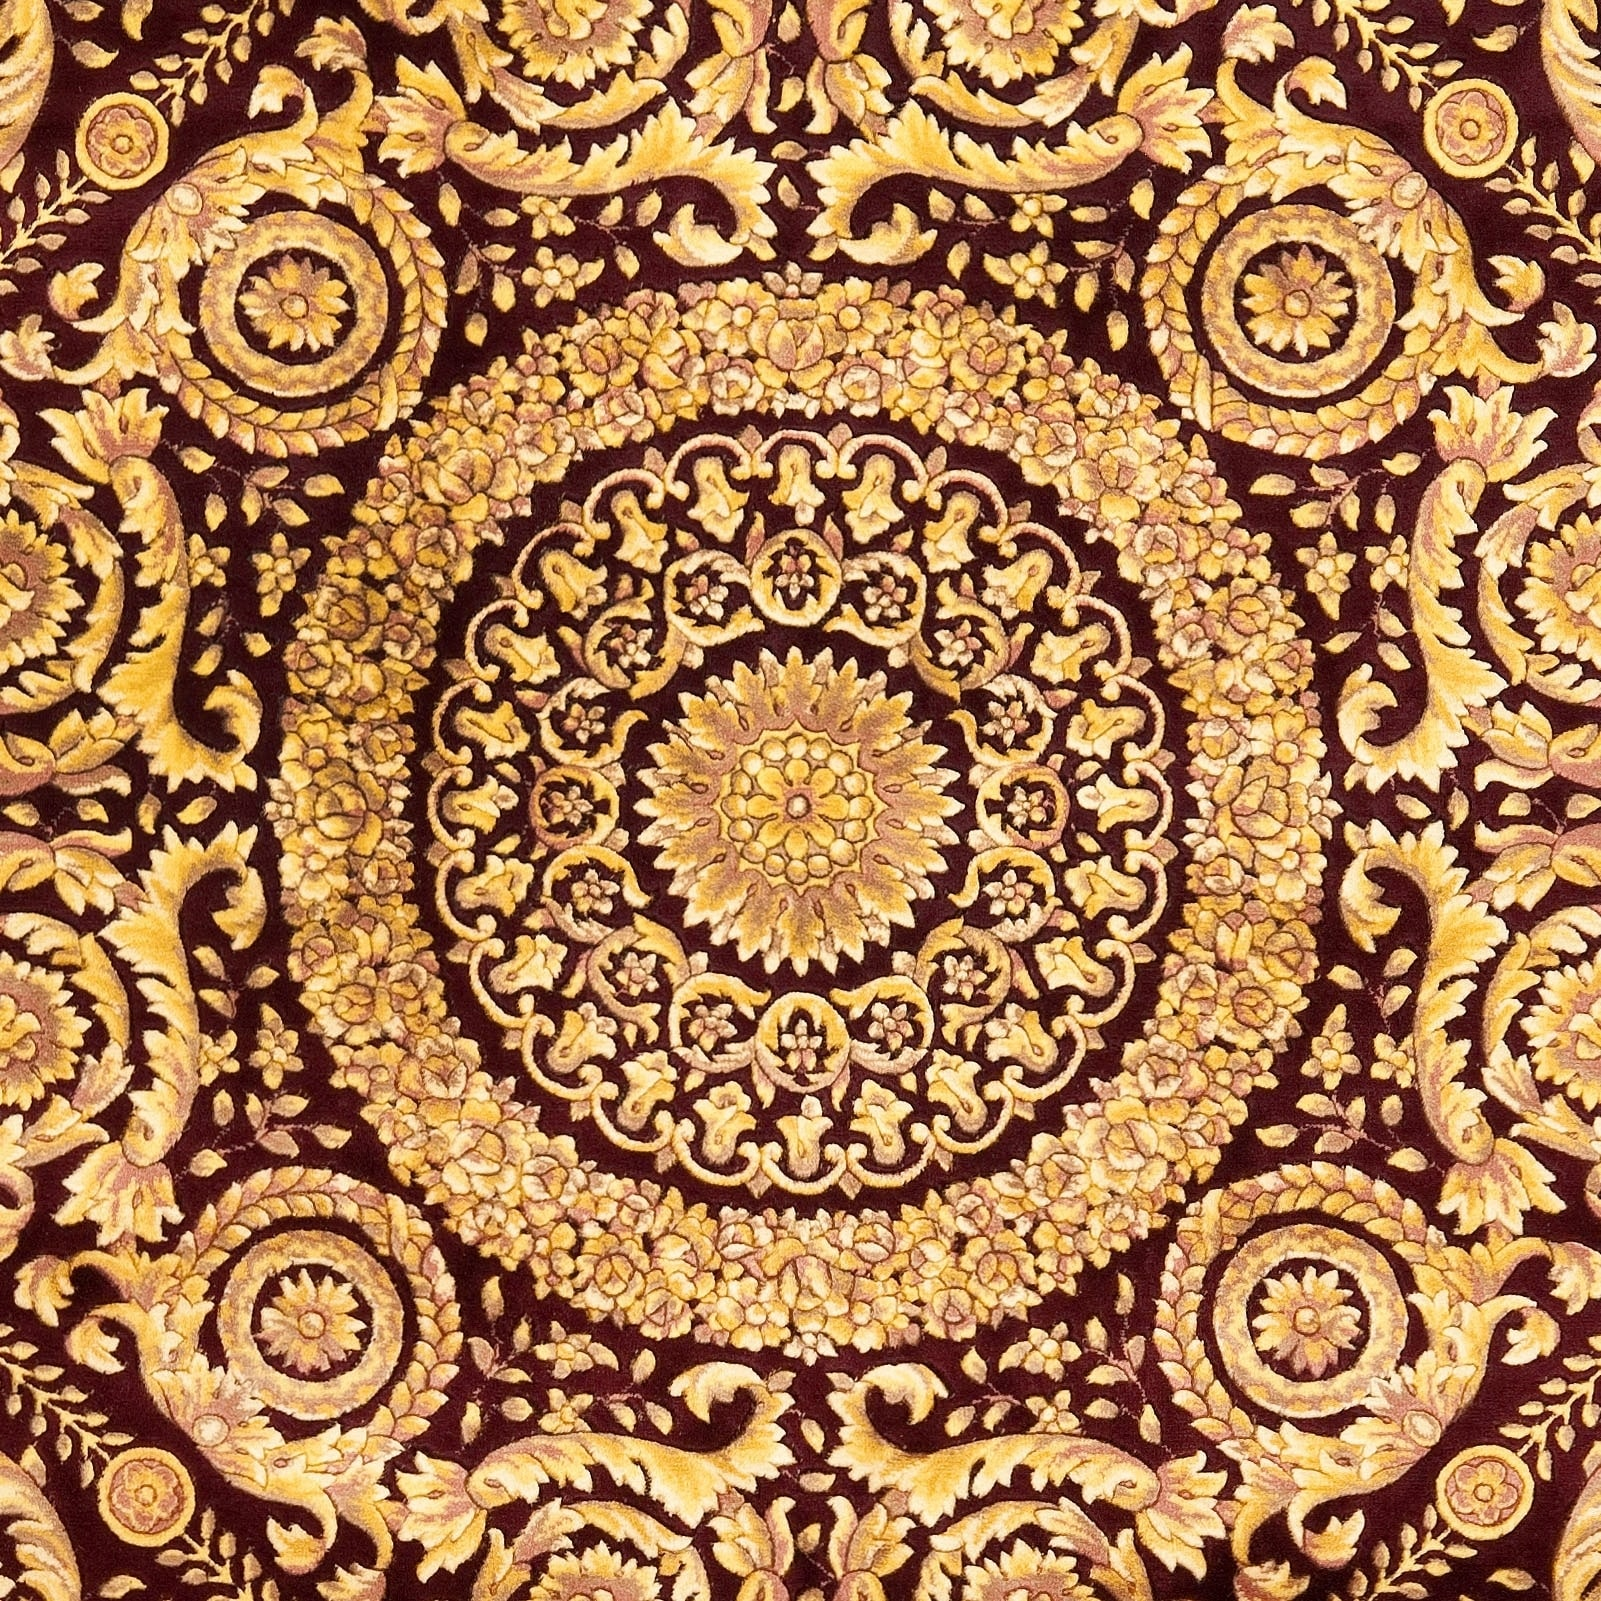 Safavieh Couture Handmade Florence Traditional Oriental - Wool Rug - Assorted - 9' x 12'